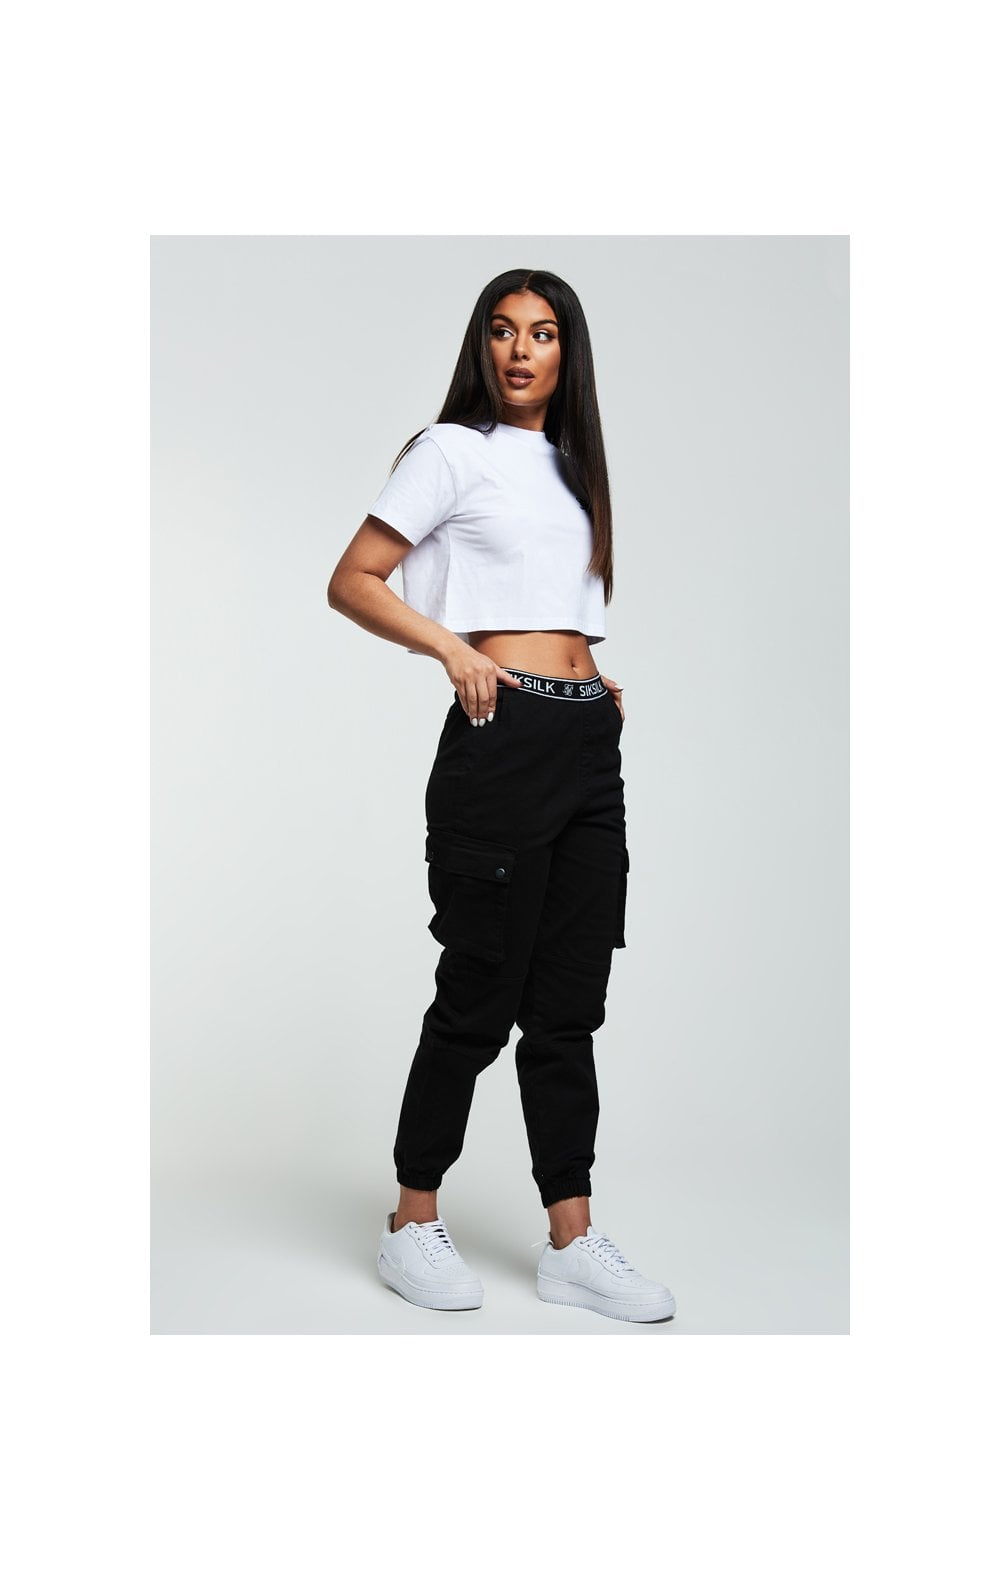 SikSilk Retro Box Crop Tee – White (3)